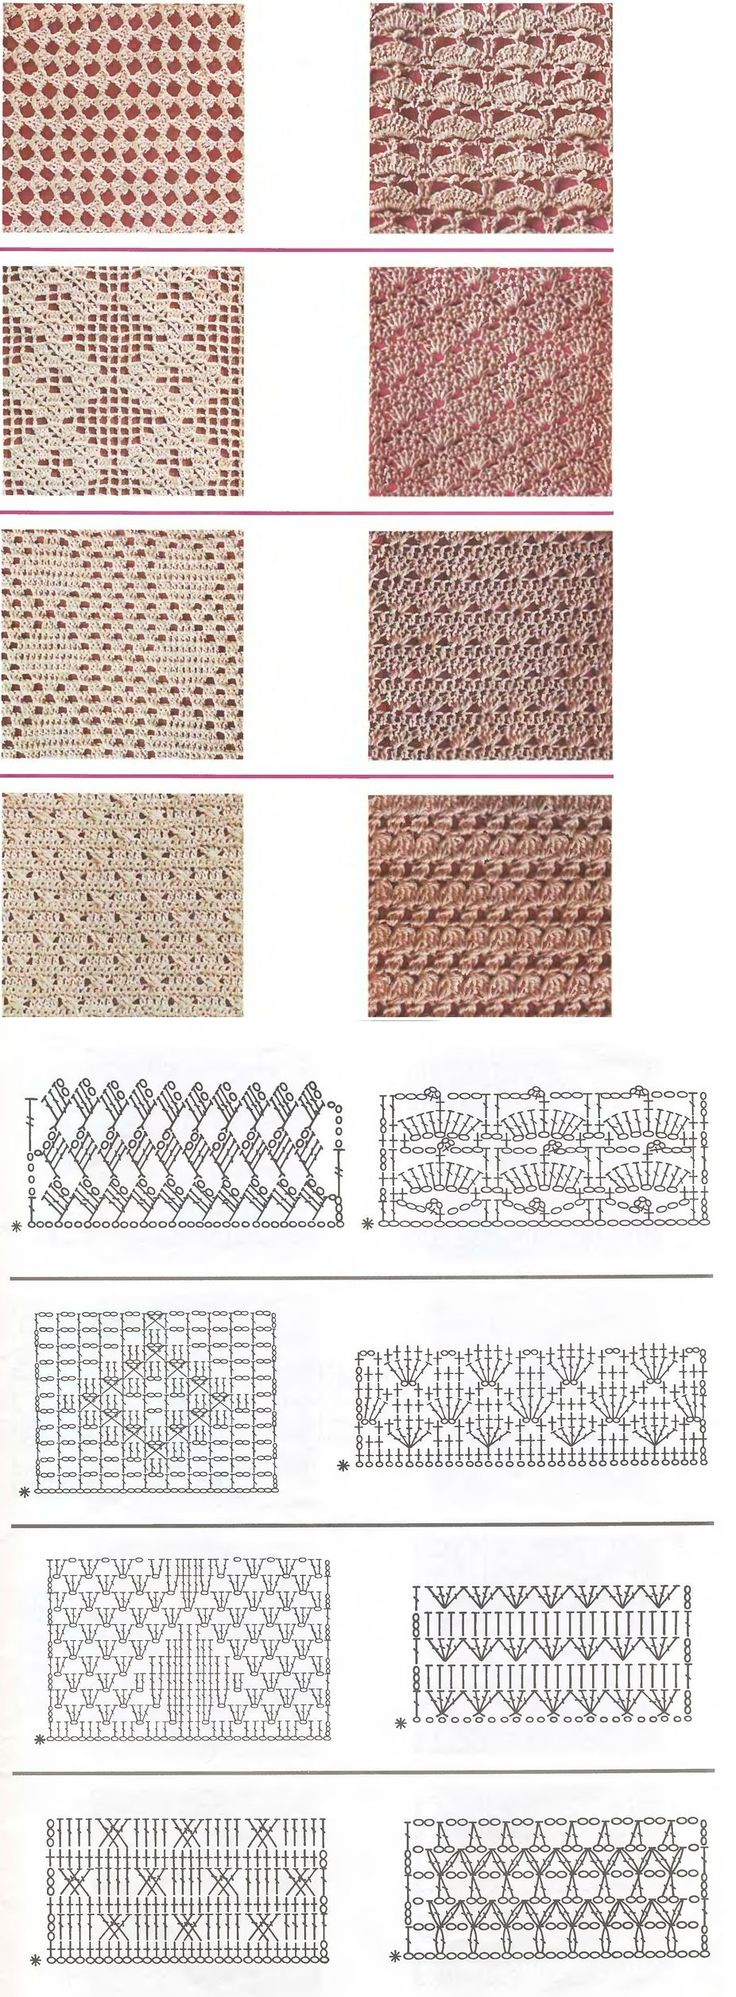 418 best Crochet rugs images on Pinterest | Doilies crochet, Crochet ...